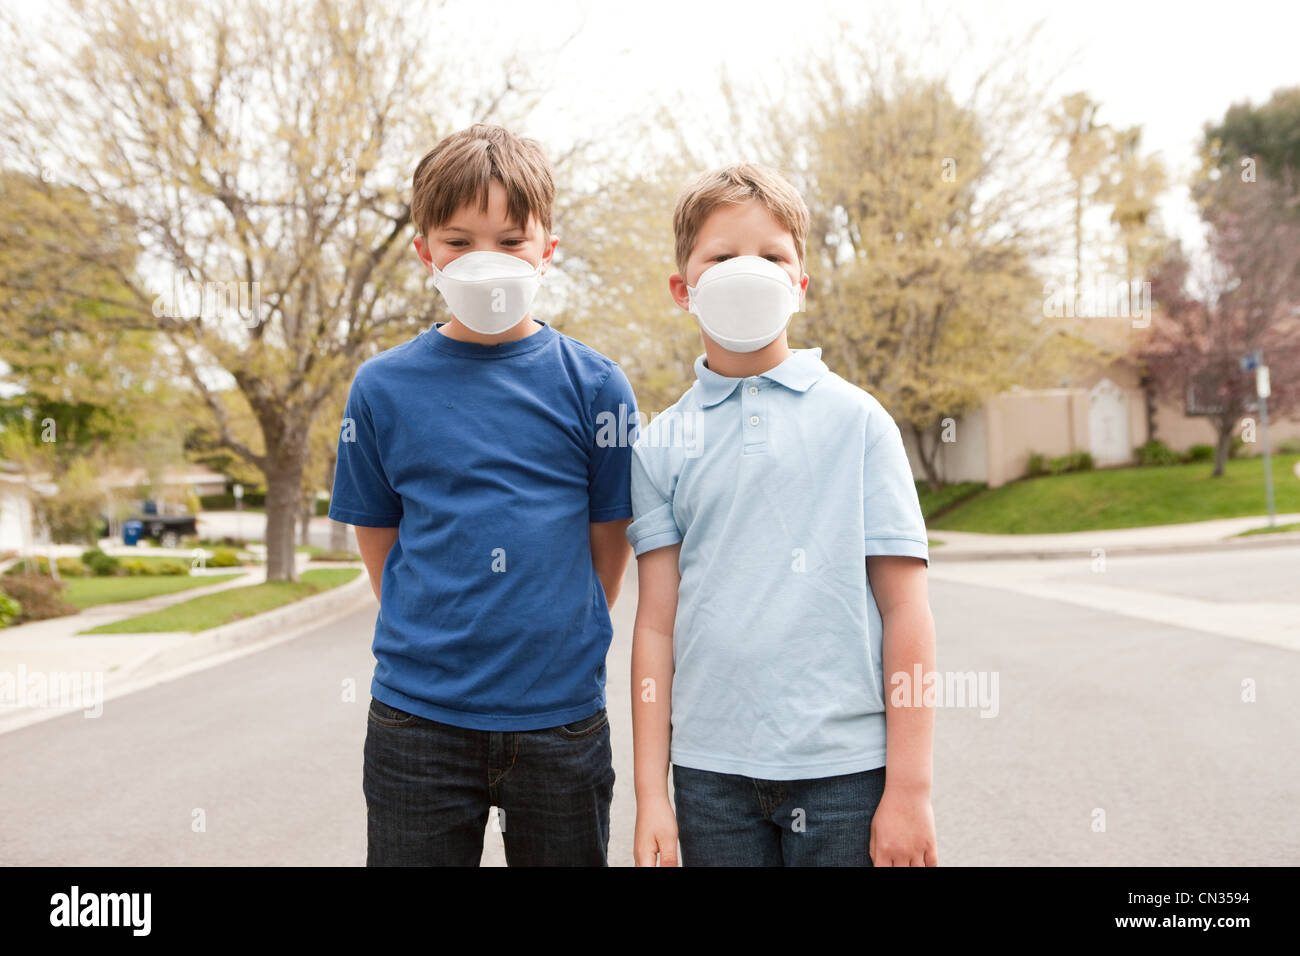 Two boys wearing dust masks - Stock Image